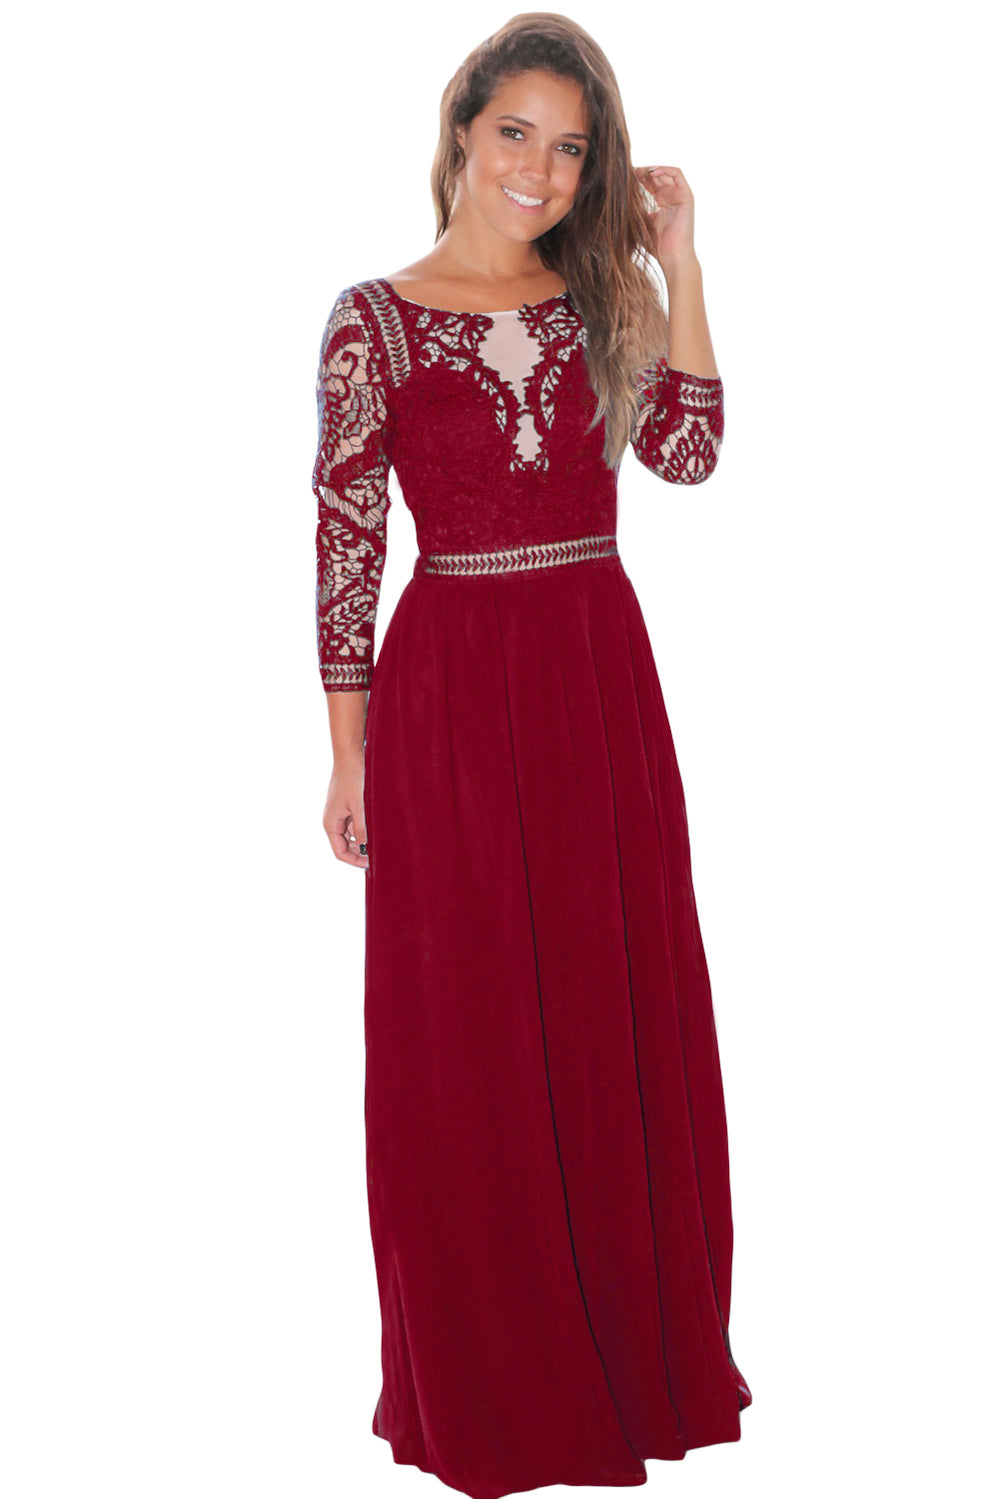 5f47c6d21 Wine Lace Crochet Quarter Sleeve Maxi Dress – FabWoo